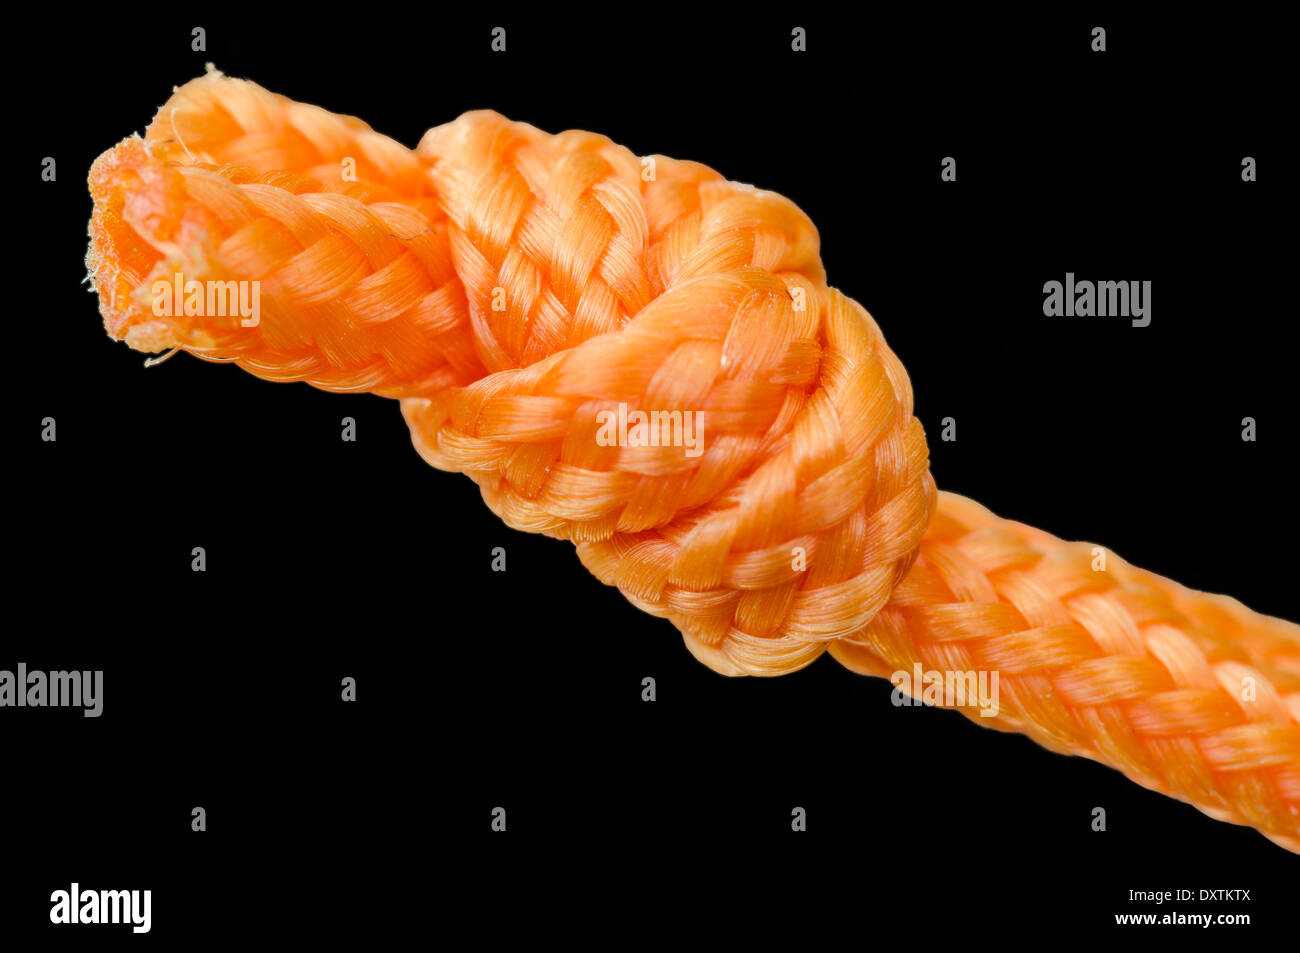 Knot. Closeup image of thick orange string tied in a knot, with a black background. - Stock Image